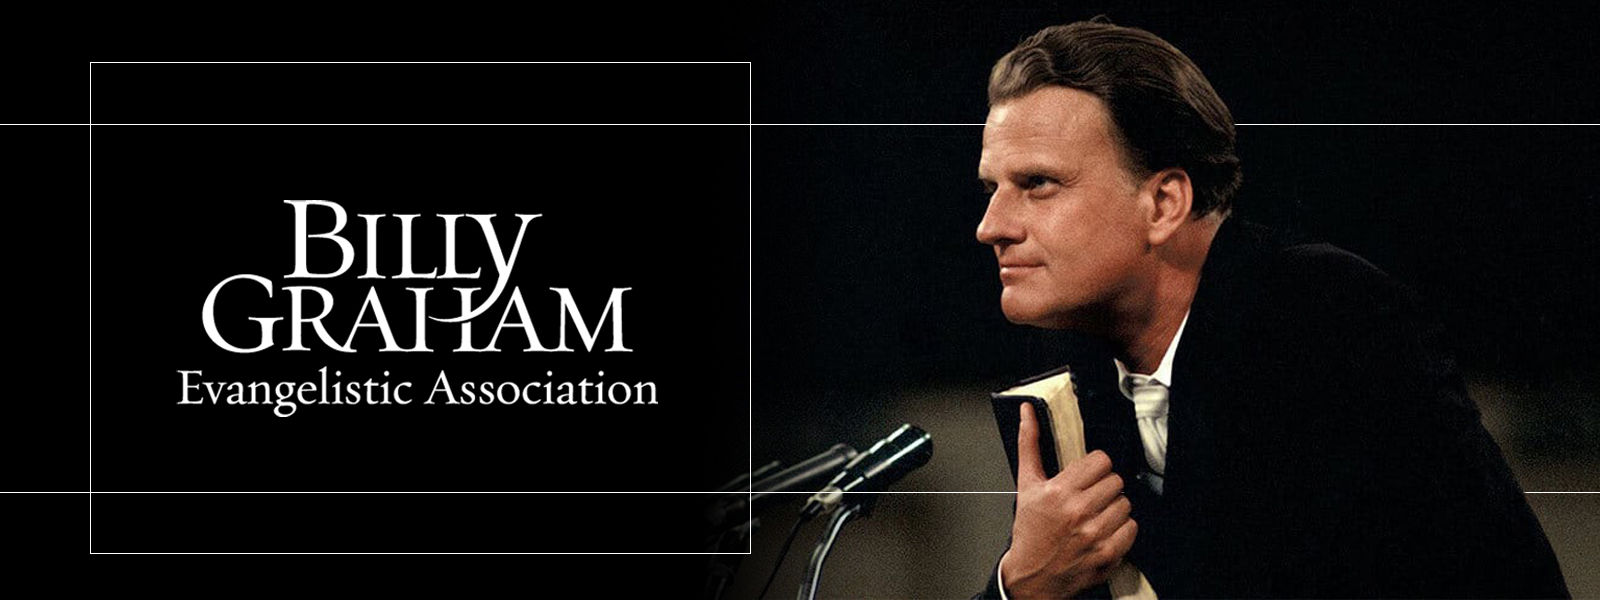 The Billy Graham Evangelistic Association